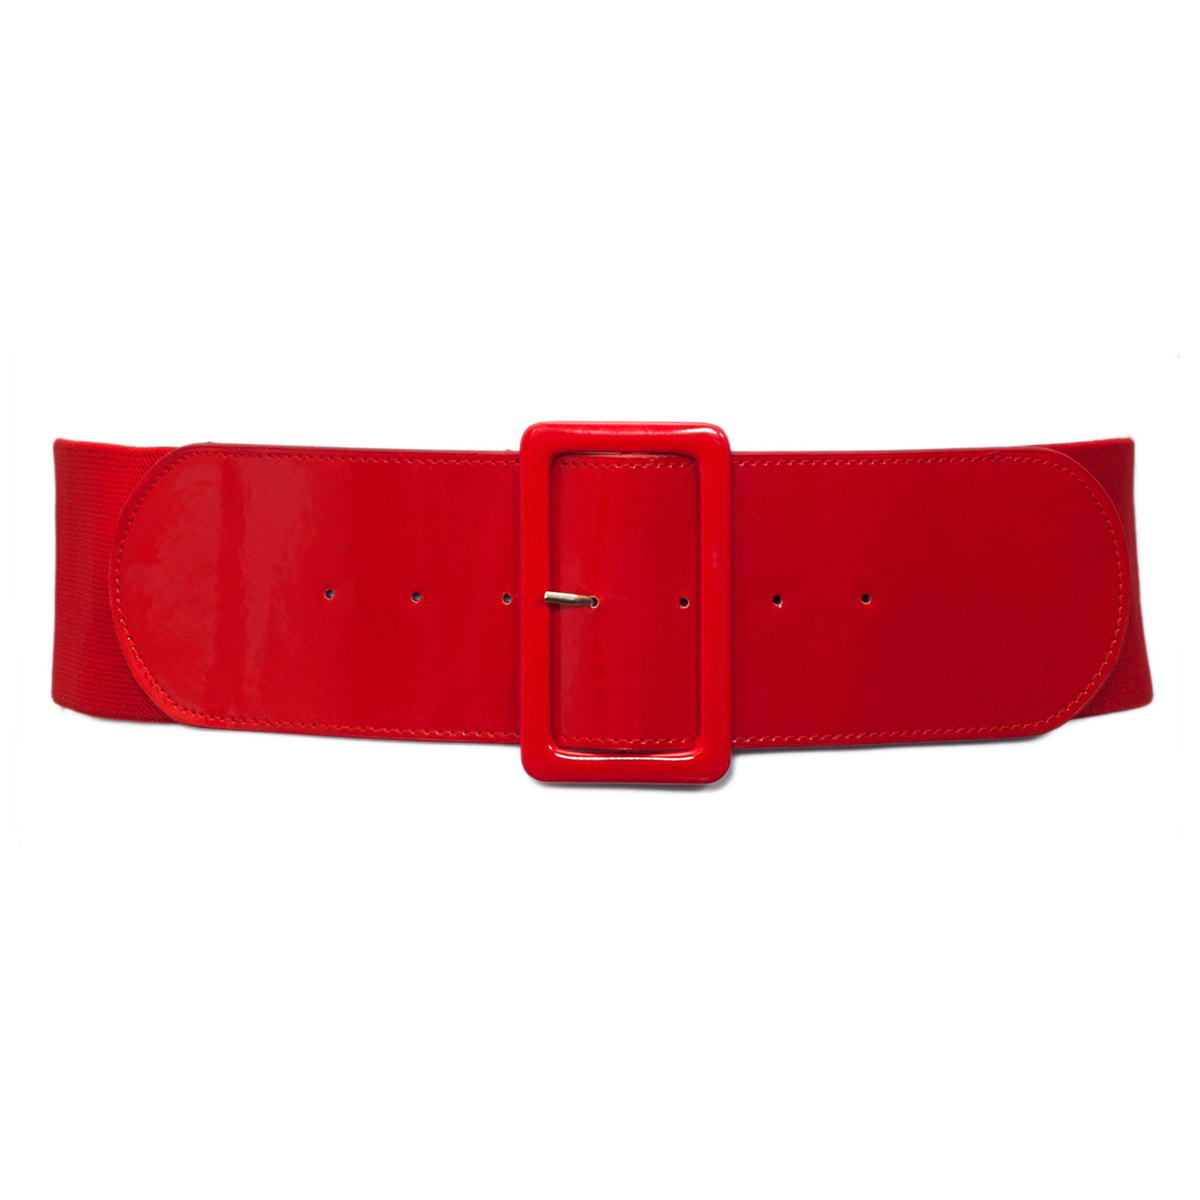 Plus Size Wide Patent Leather Fashion Belt Red Photo 1